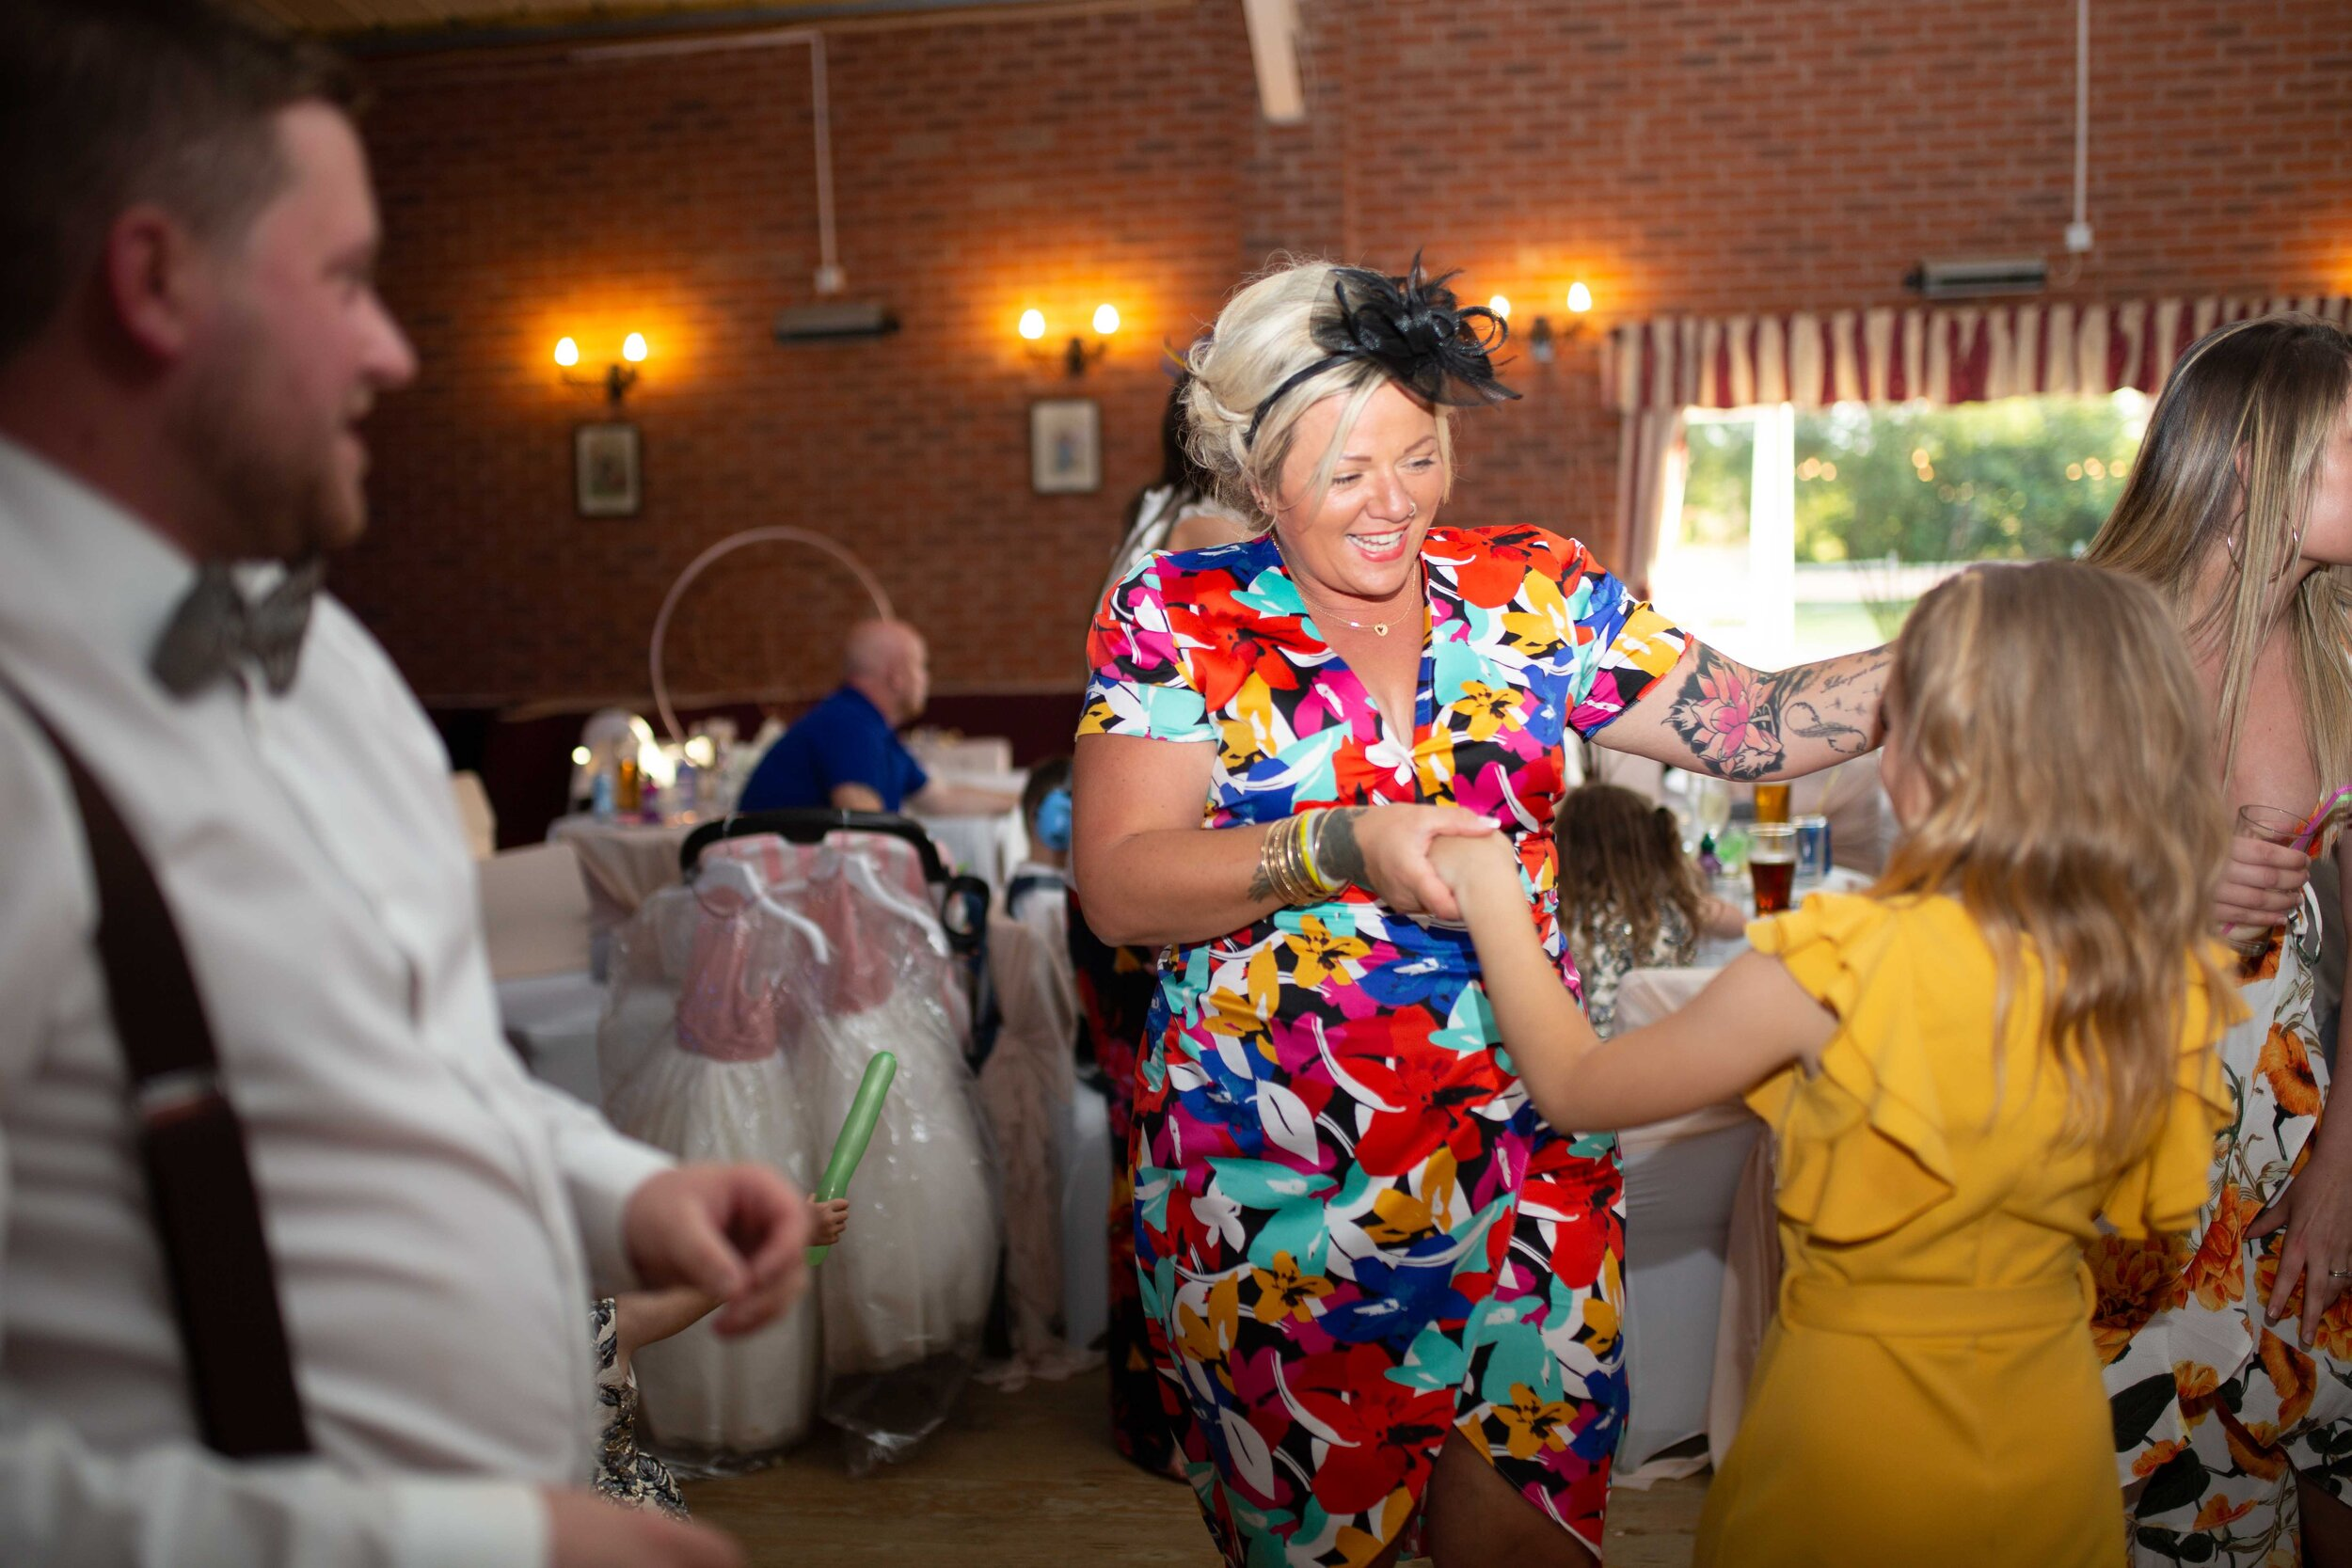 Lea Cooper photography - wedding photography - st Lawrence church dalaston West Midlands Willenhall Wednesday wedding photographer Brookfields club house cannock road - 39.JPG